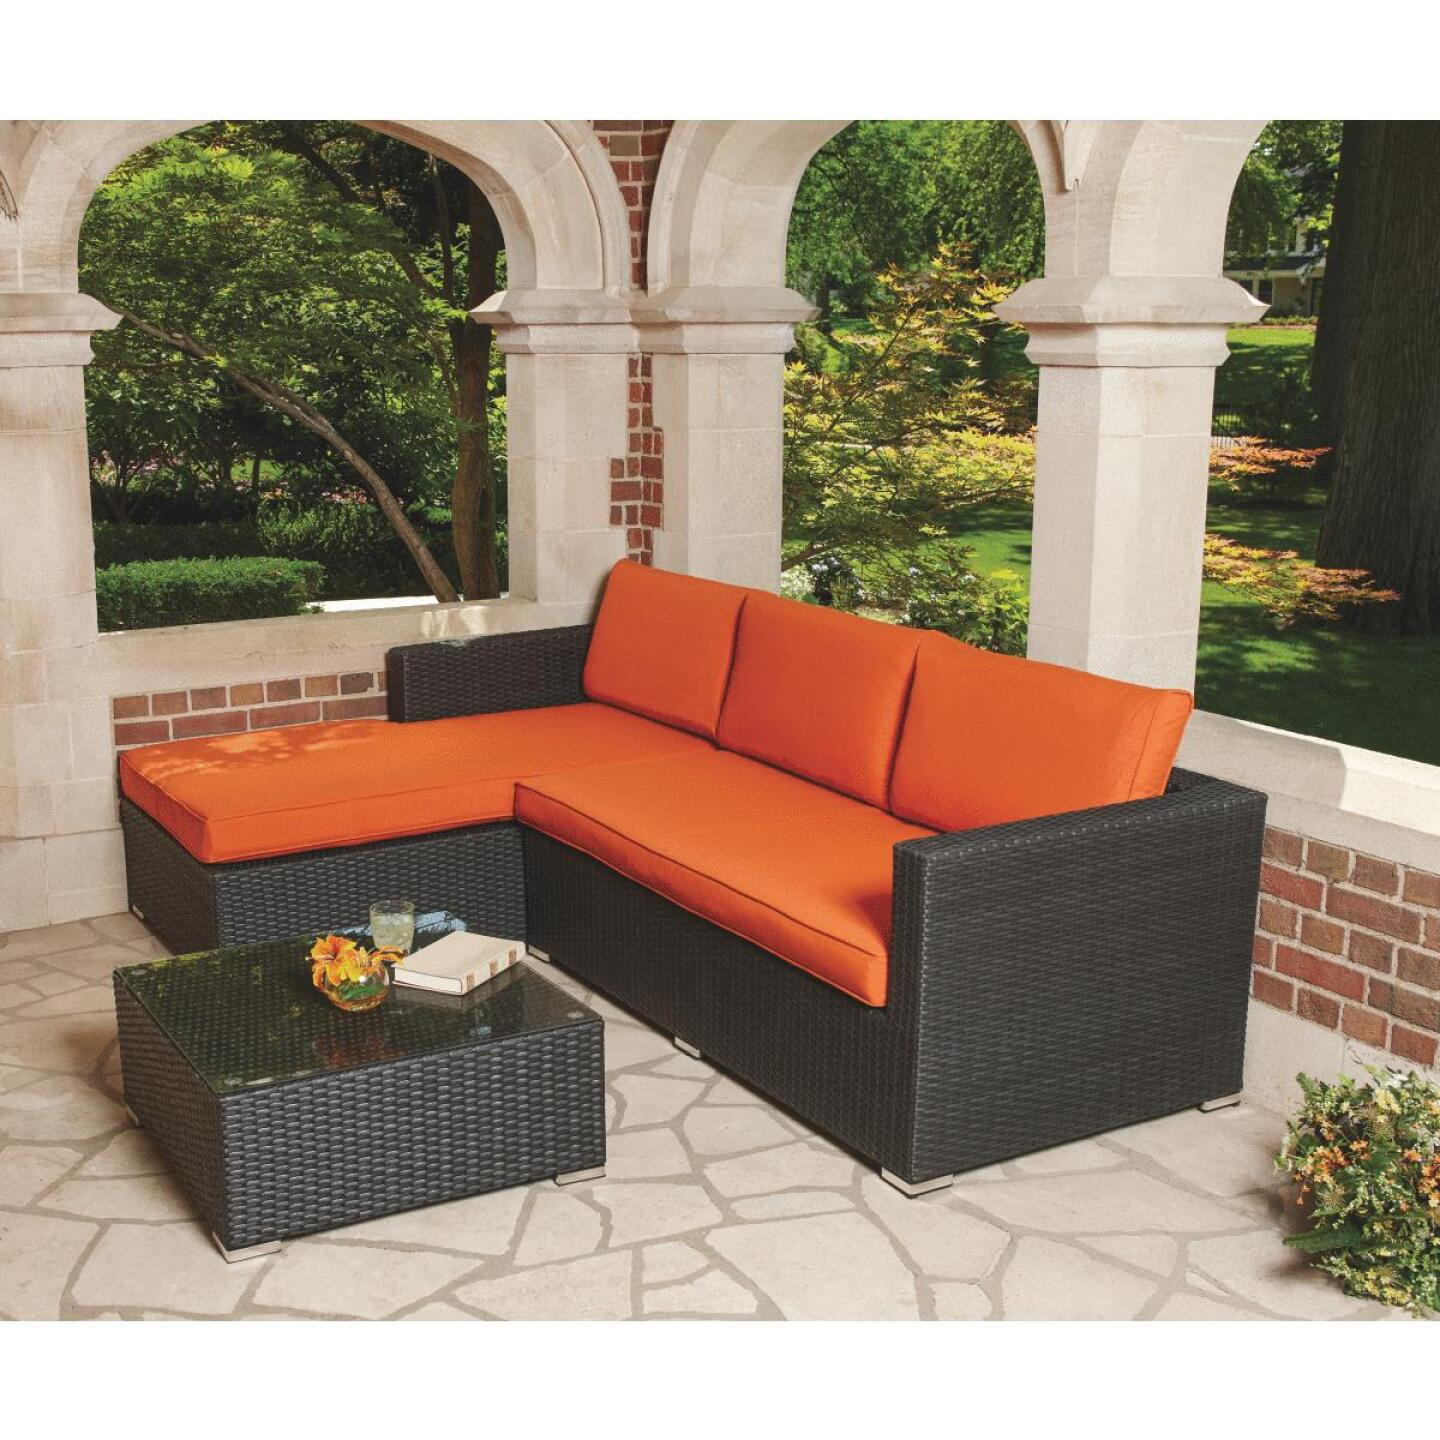 Malibu 3-Seat 94 In. W. x 25 In. H. x 62 In. D. Orange Sectional Sofa Set Image 5